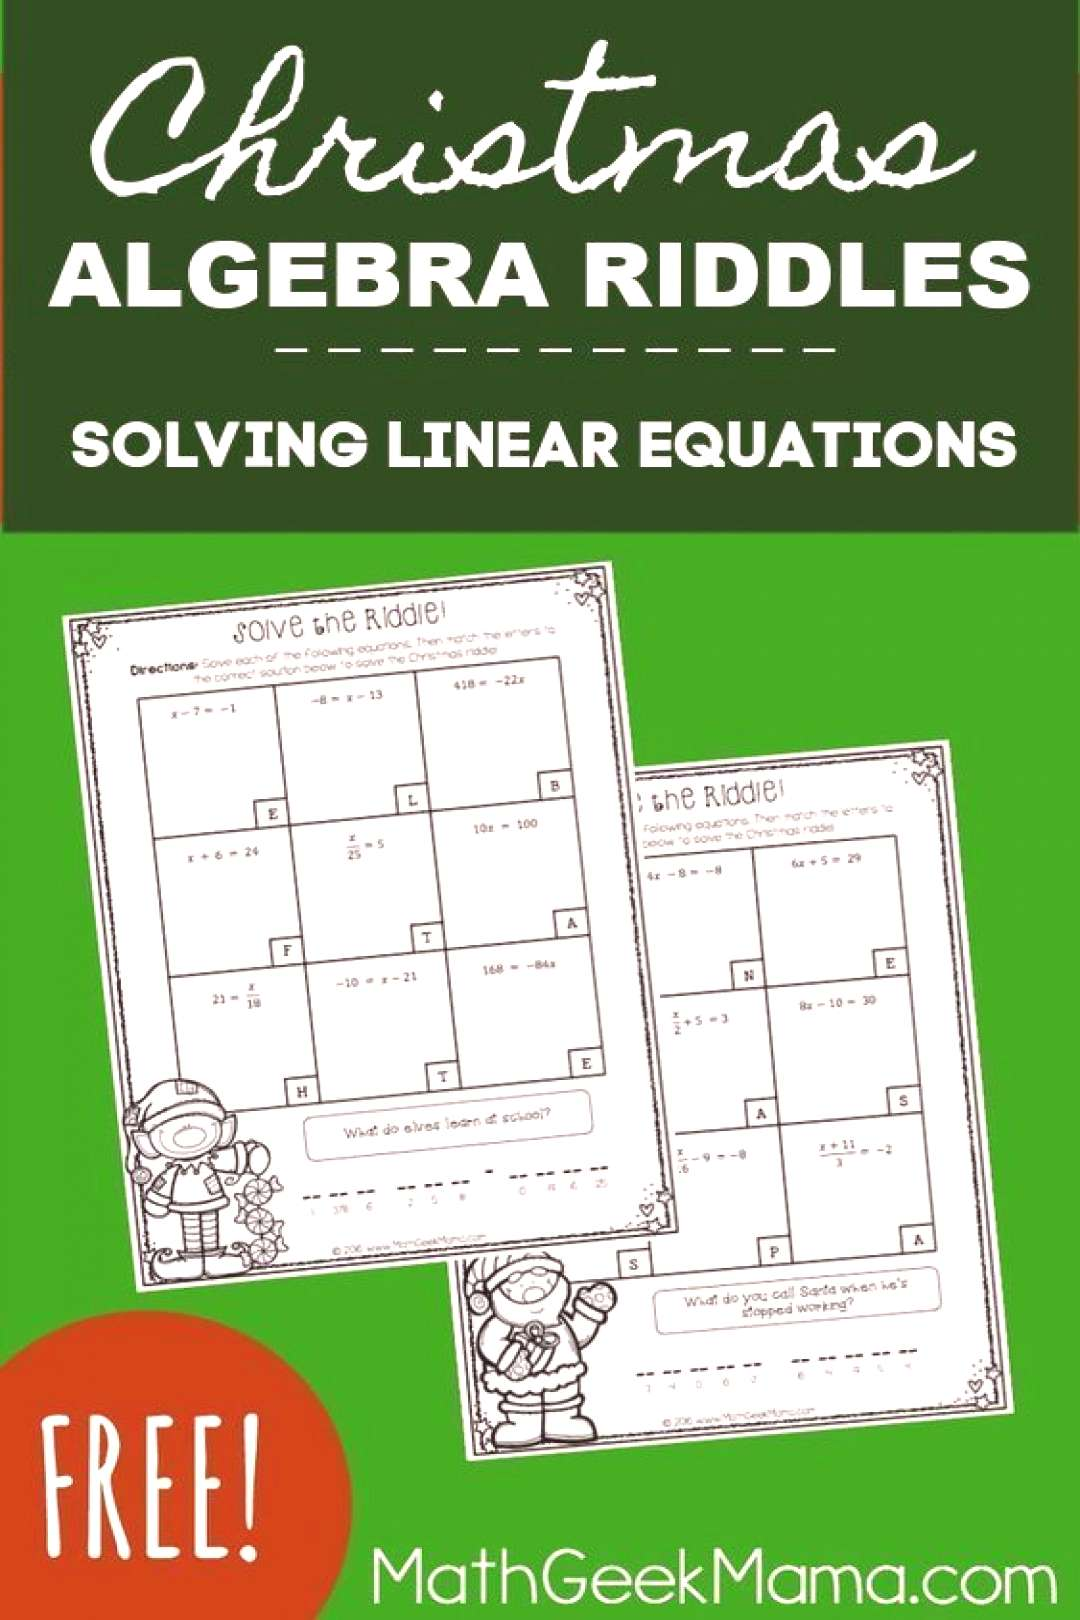 Solving Linear Equations Activity Pages-Christmas Theme {FREE} These adorable Christmas riddles are